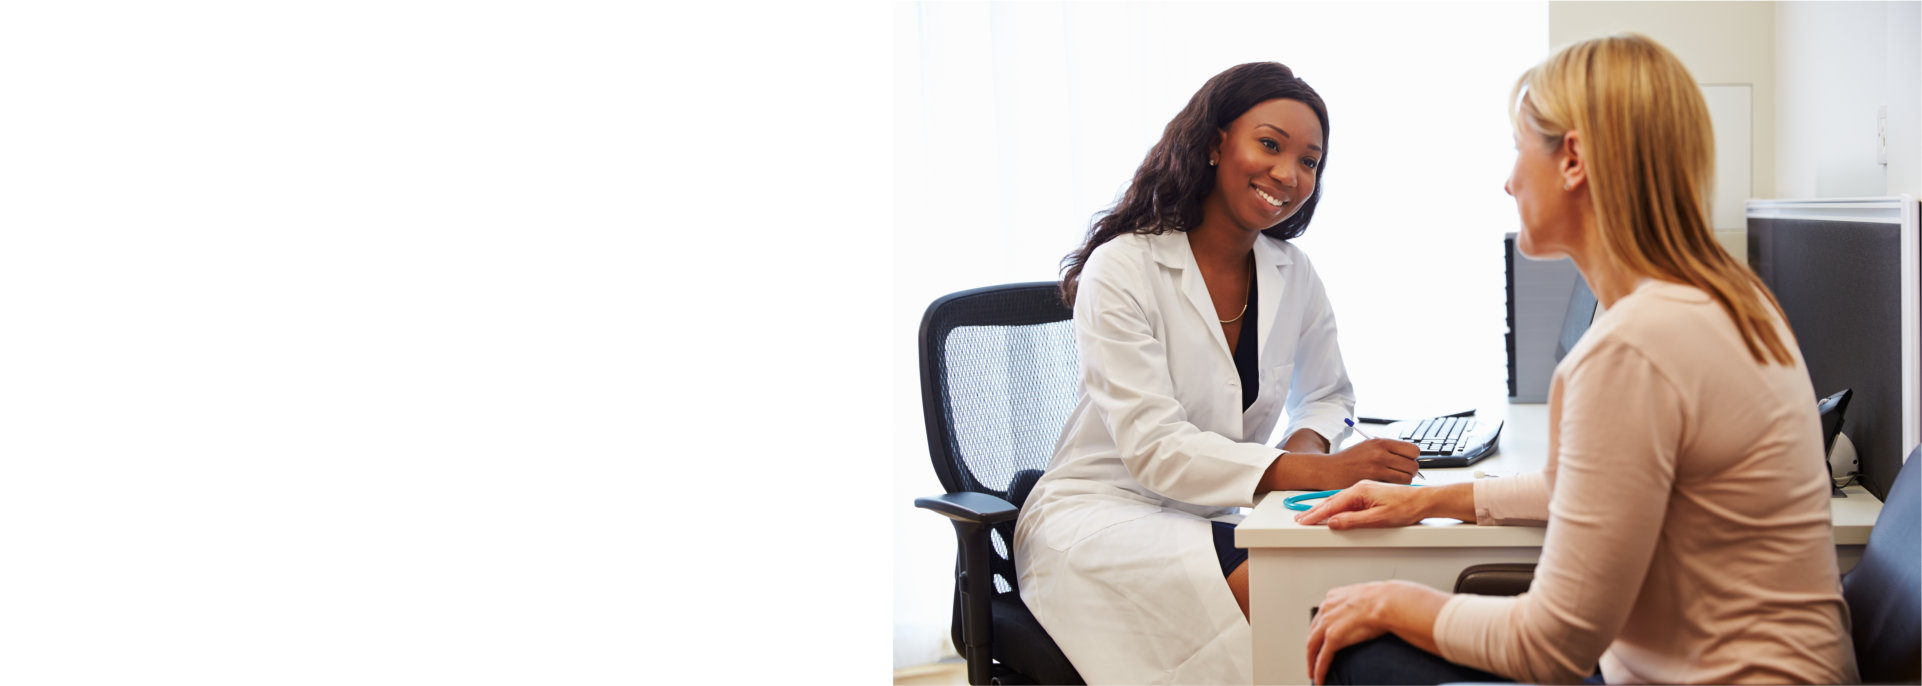 woman consults doctor